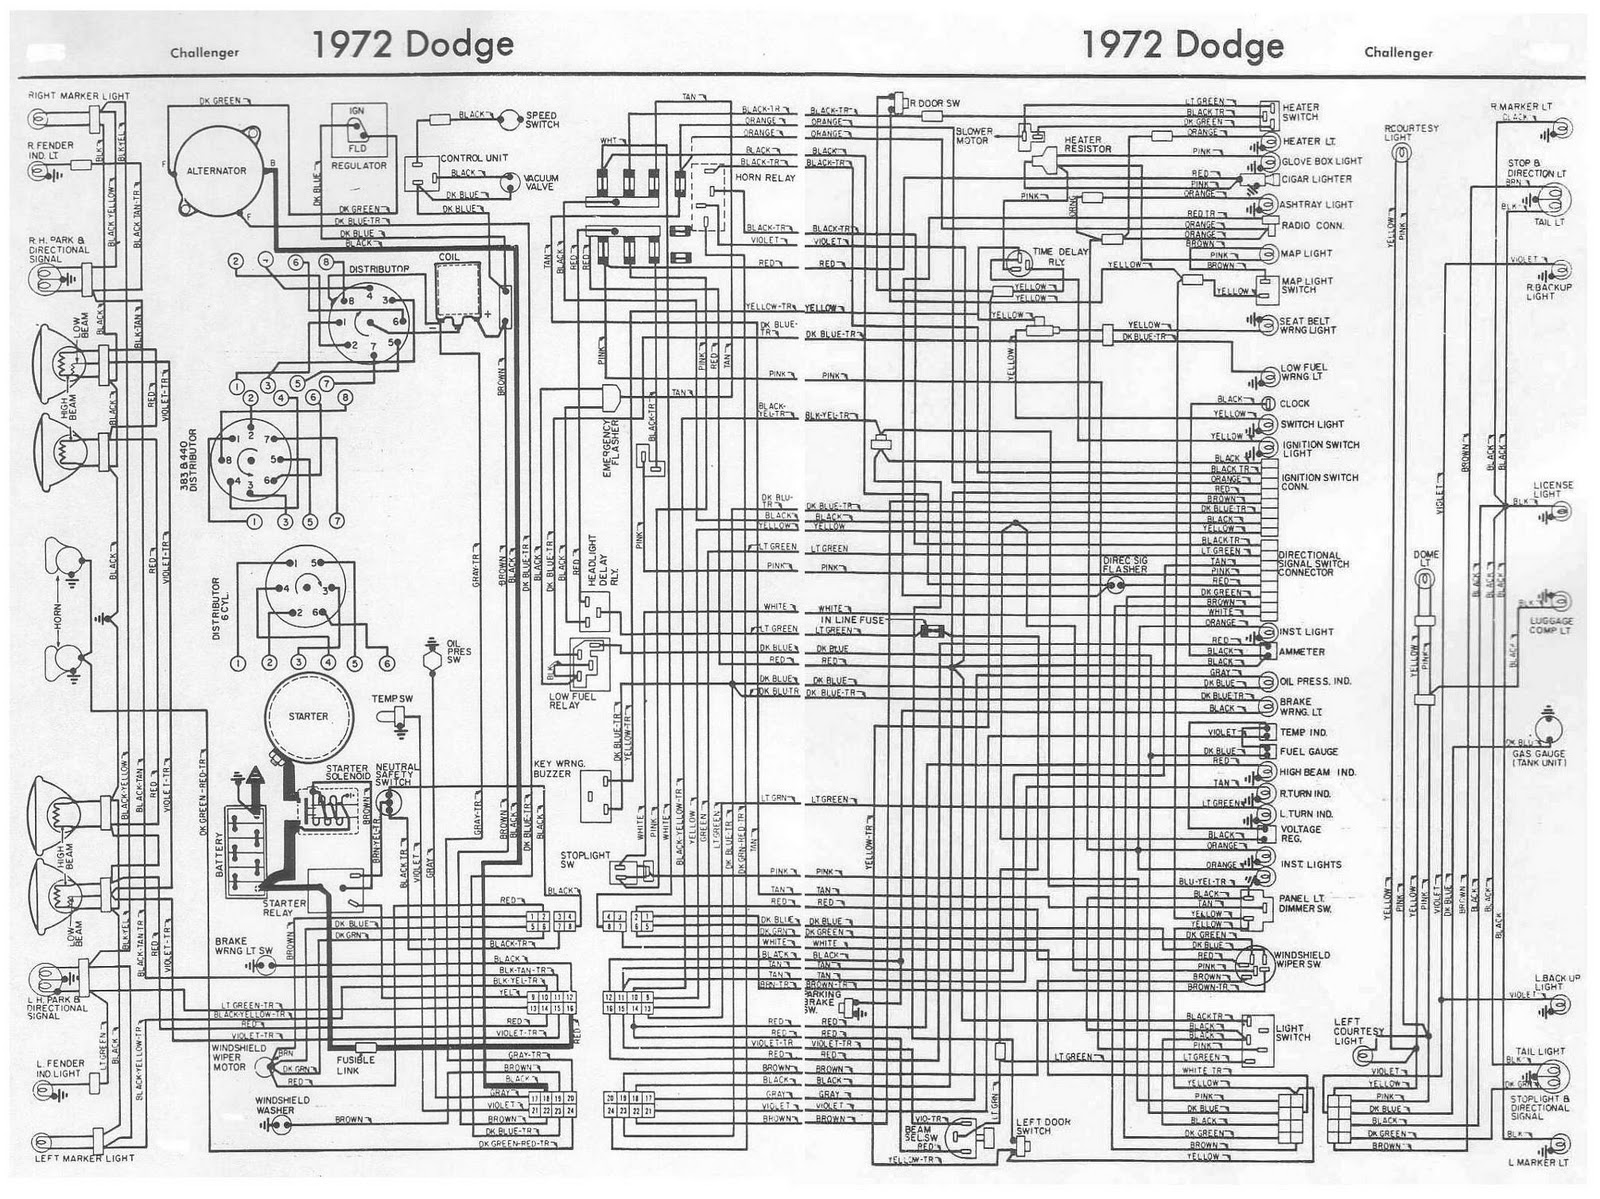 Dodge+Challenger+1972+Complete+Wiring+Diagram dodge challenger 1972 complete wiring diagram all about wiring 1969 dodge charger wiring harness at eliteediting.co